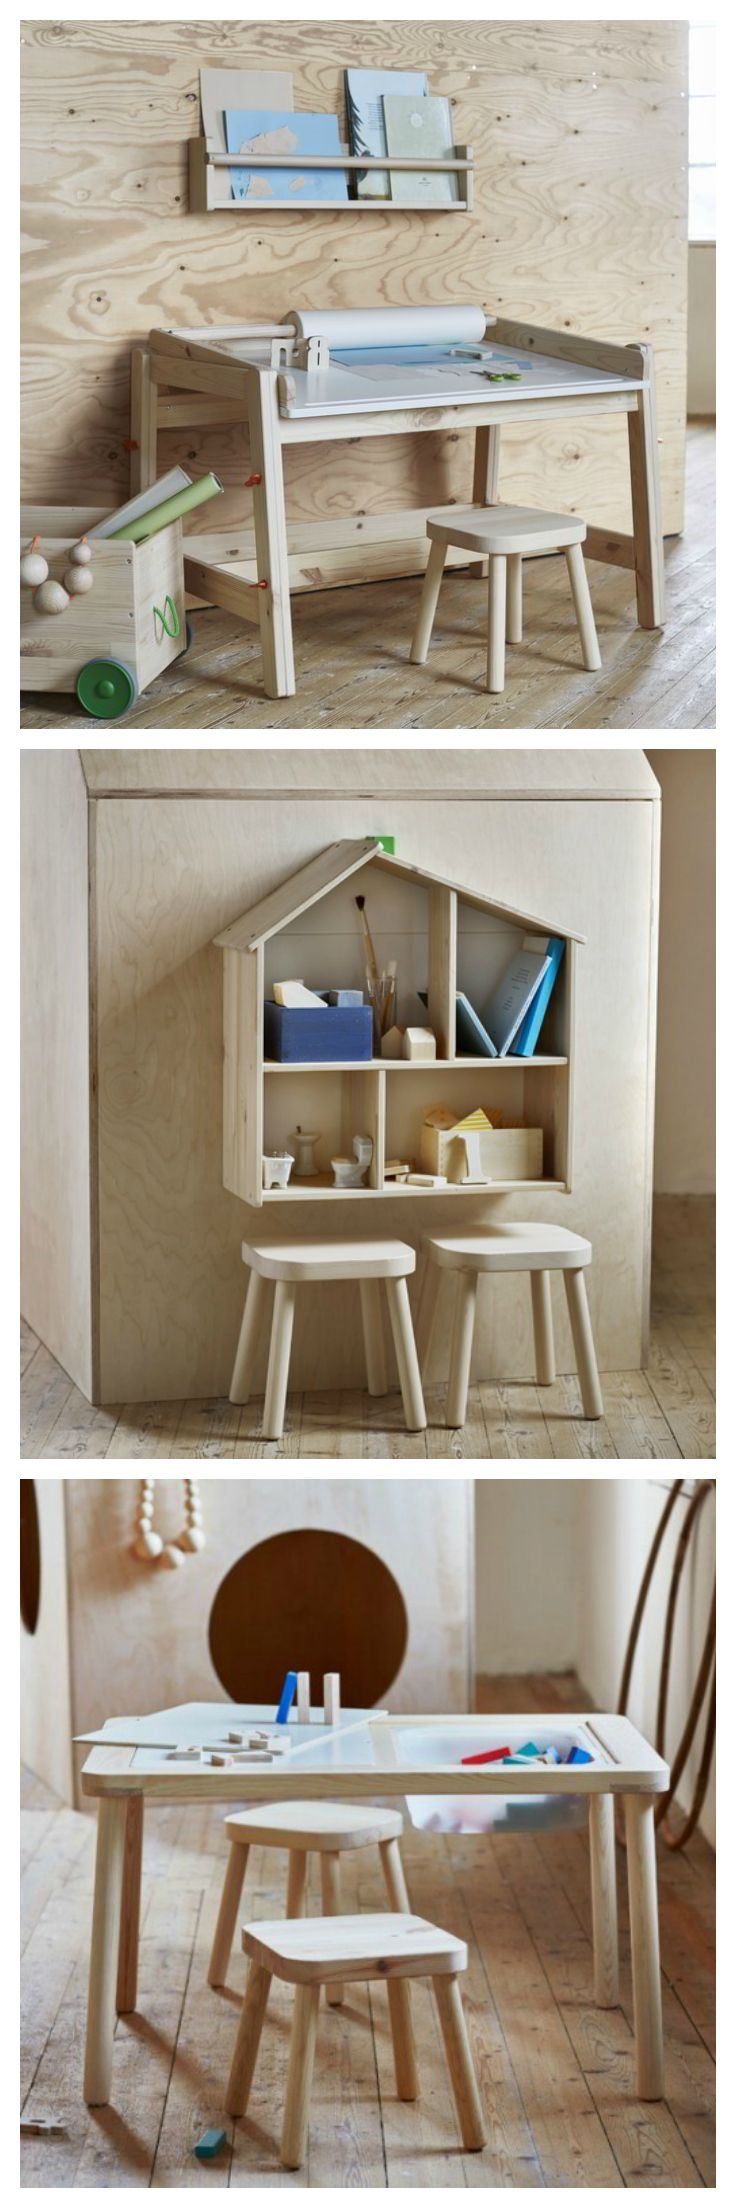 ikea playroom furniture. Clean Lines And Scandinavian Vibes - Ikea Children\u0027s Furniture Perfect For A Playroom R